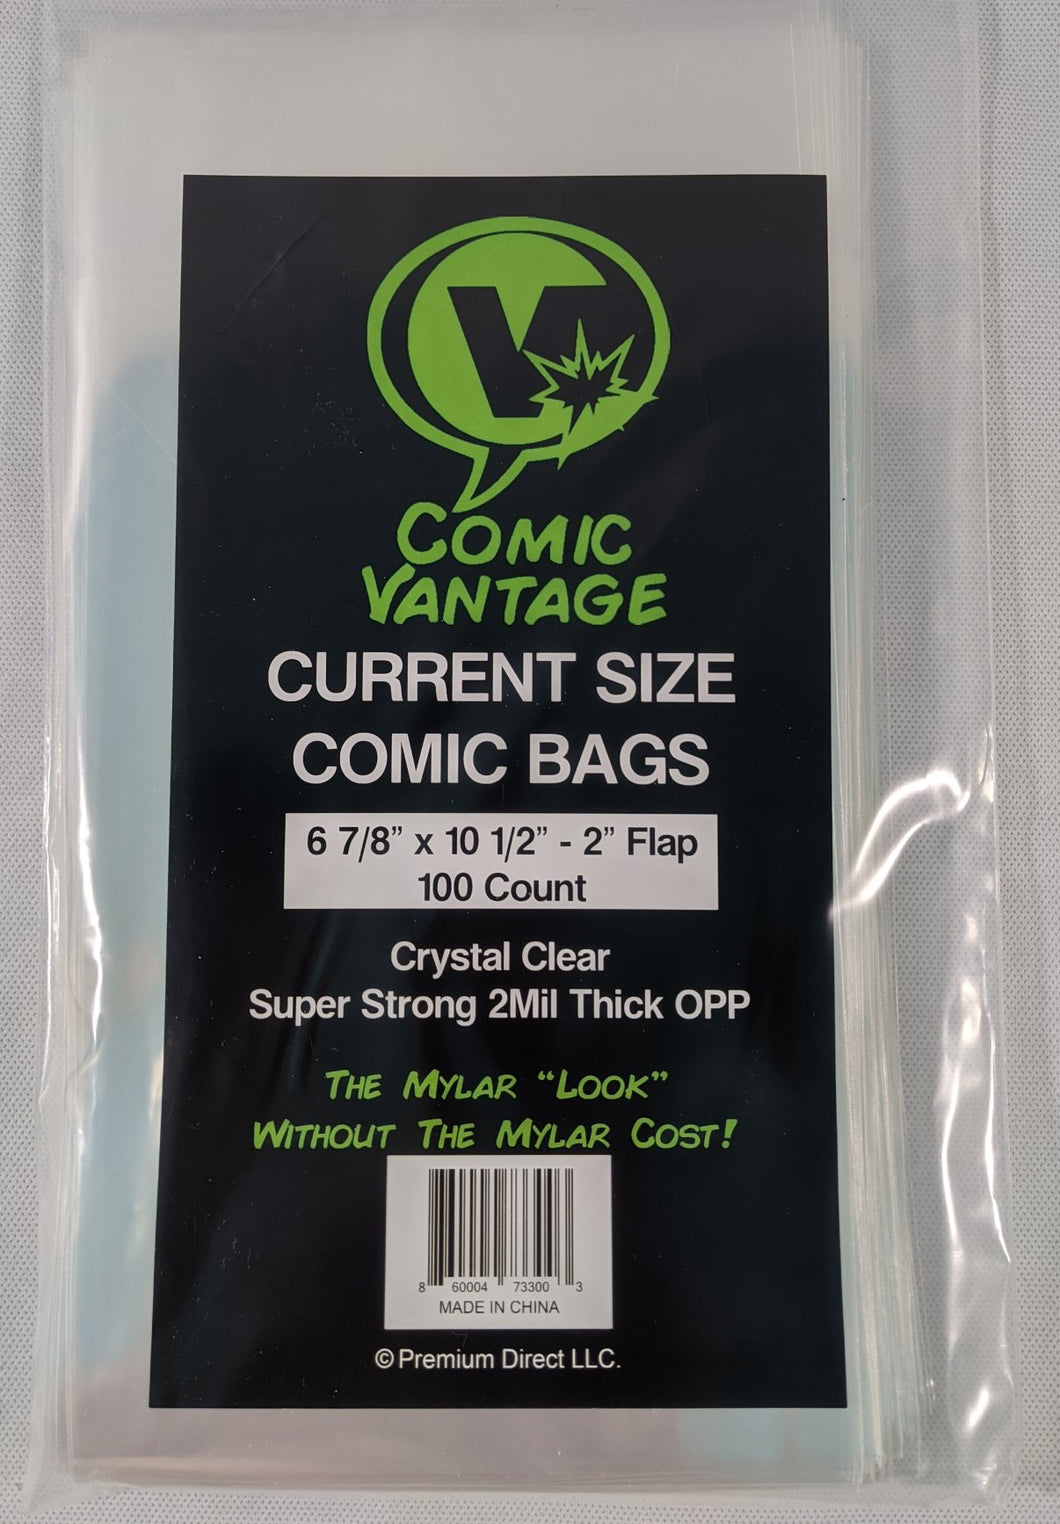 Comic Vantage Current Size Crystal Clear Comic Bags